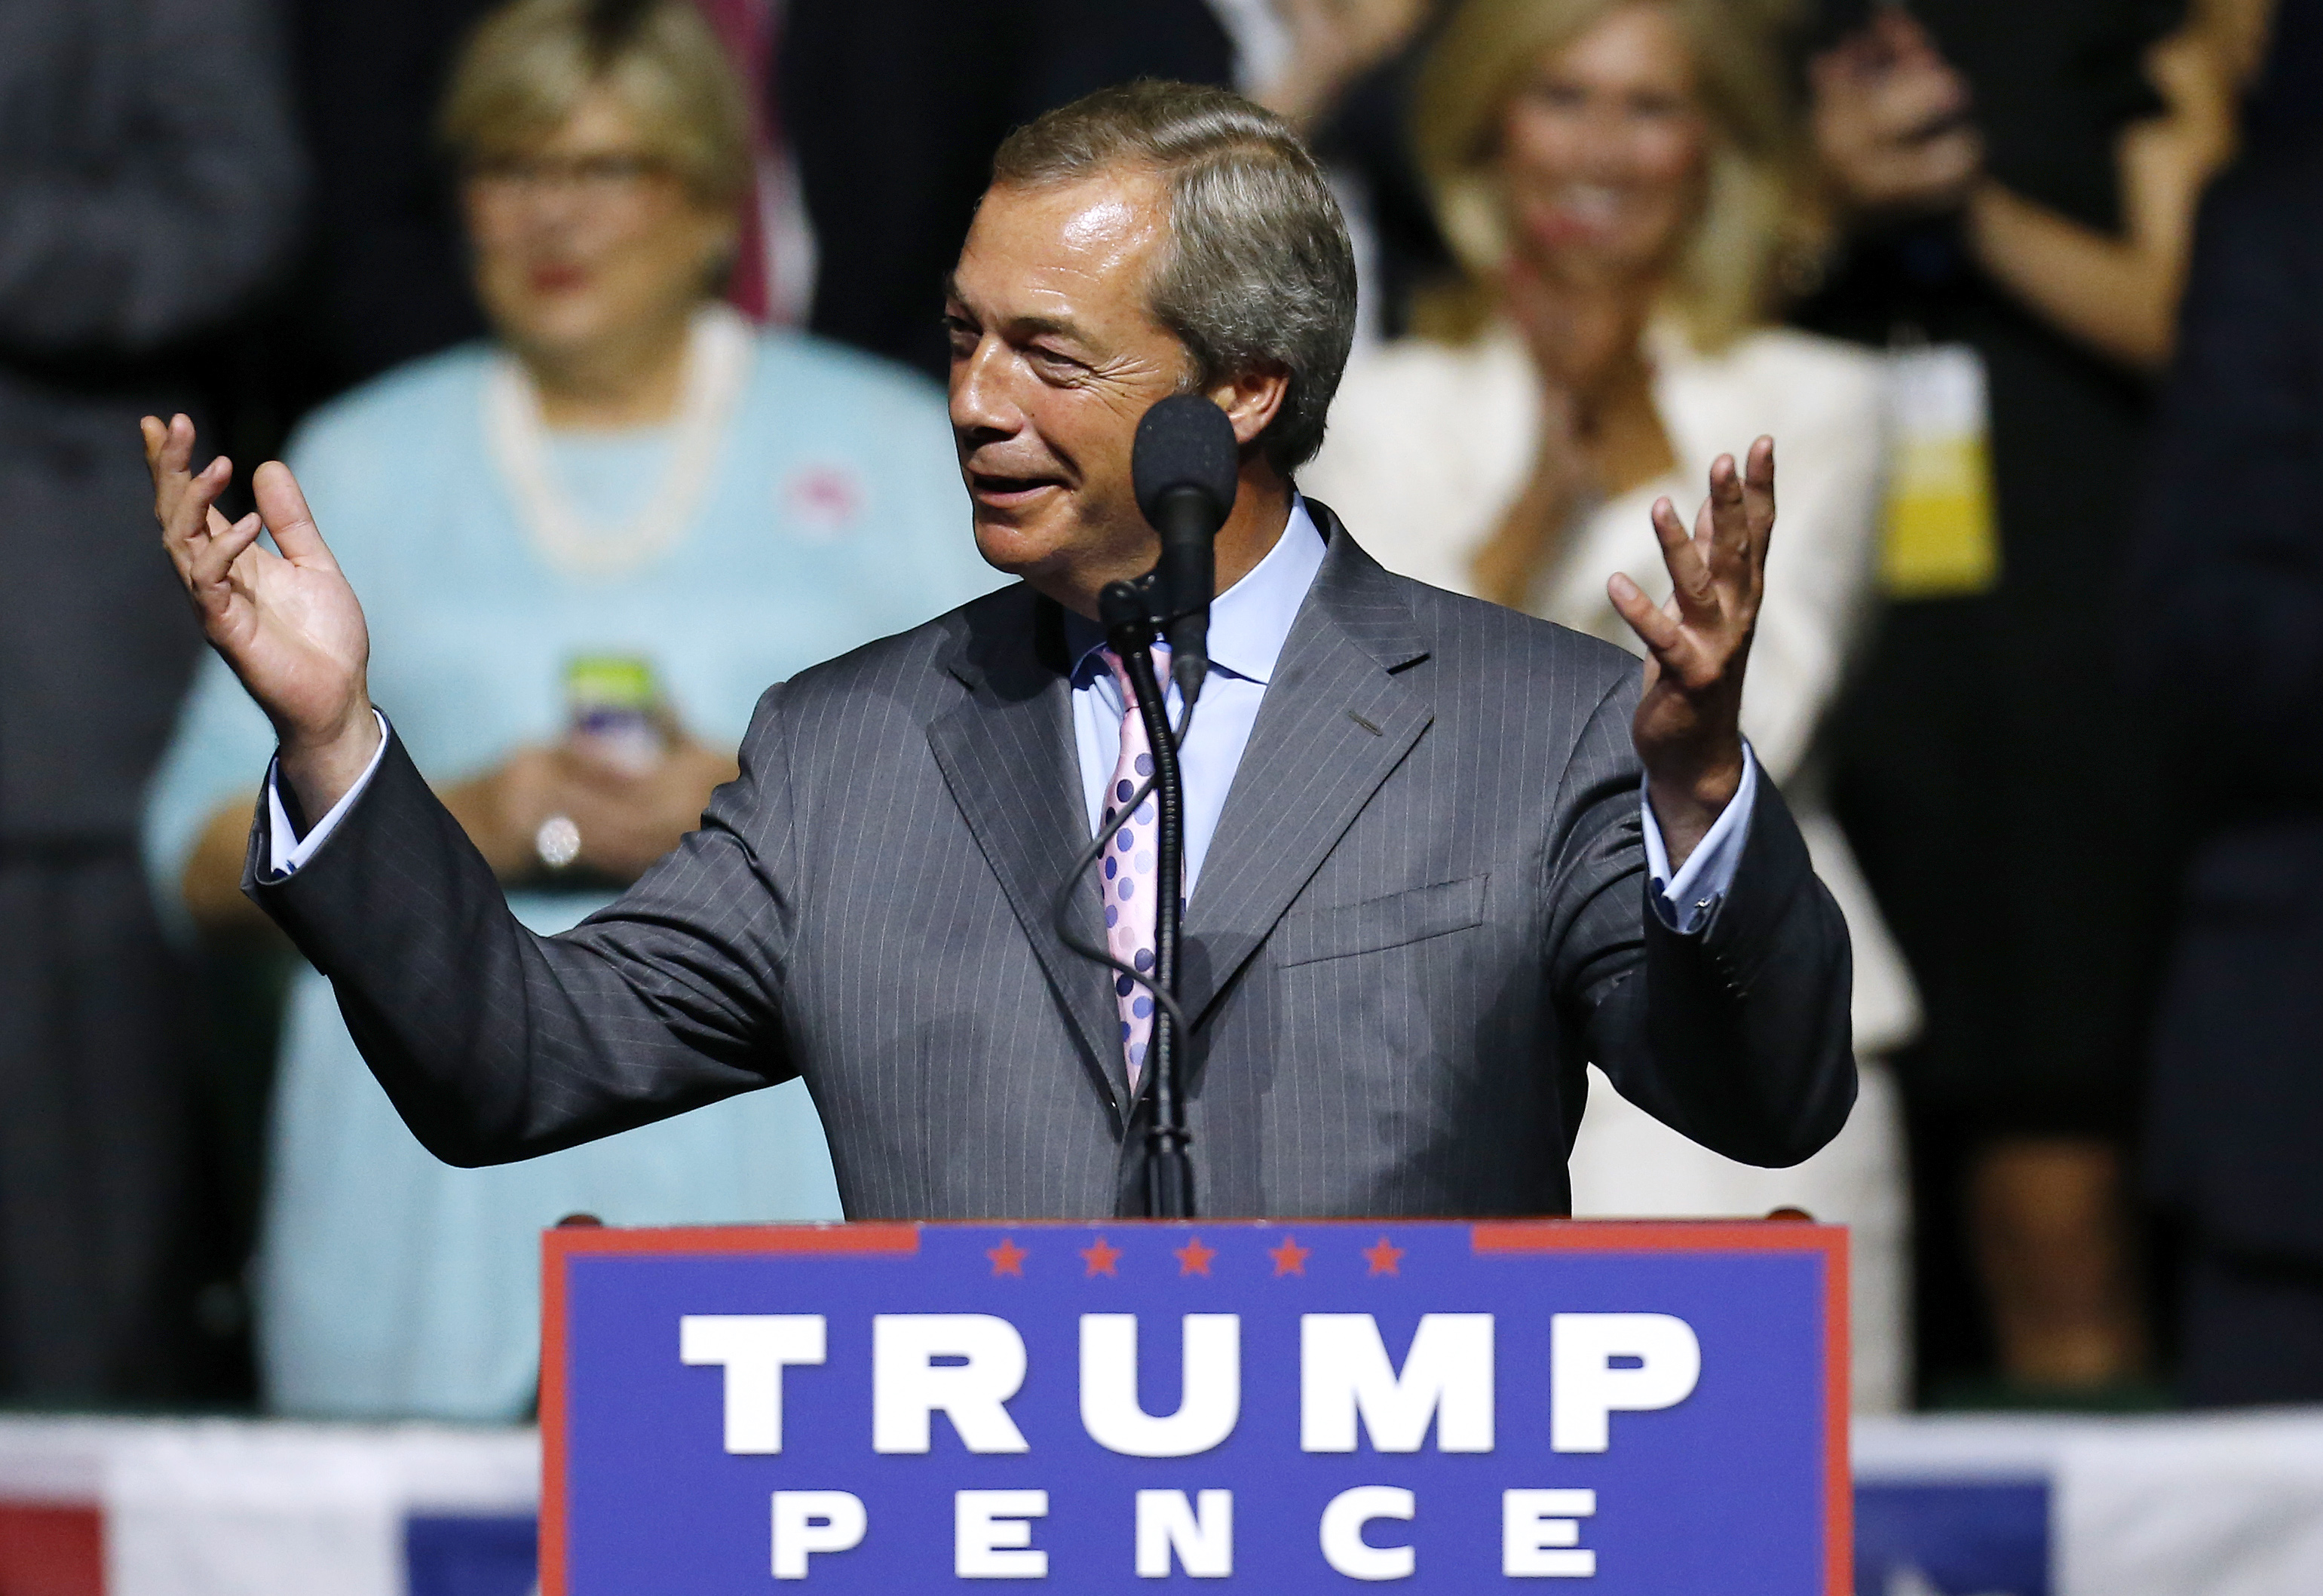 U.K. Independence Party leader Nigel Farage speaks during a campaign rally for Republican presidential nominee Donald Trump at the Mississippi Coliseum in Jackson, Miss., on Aug. 24, 2016